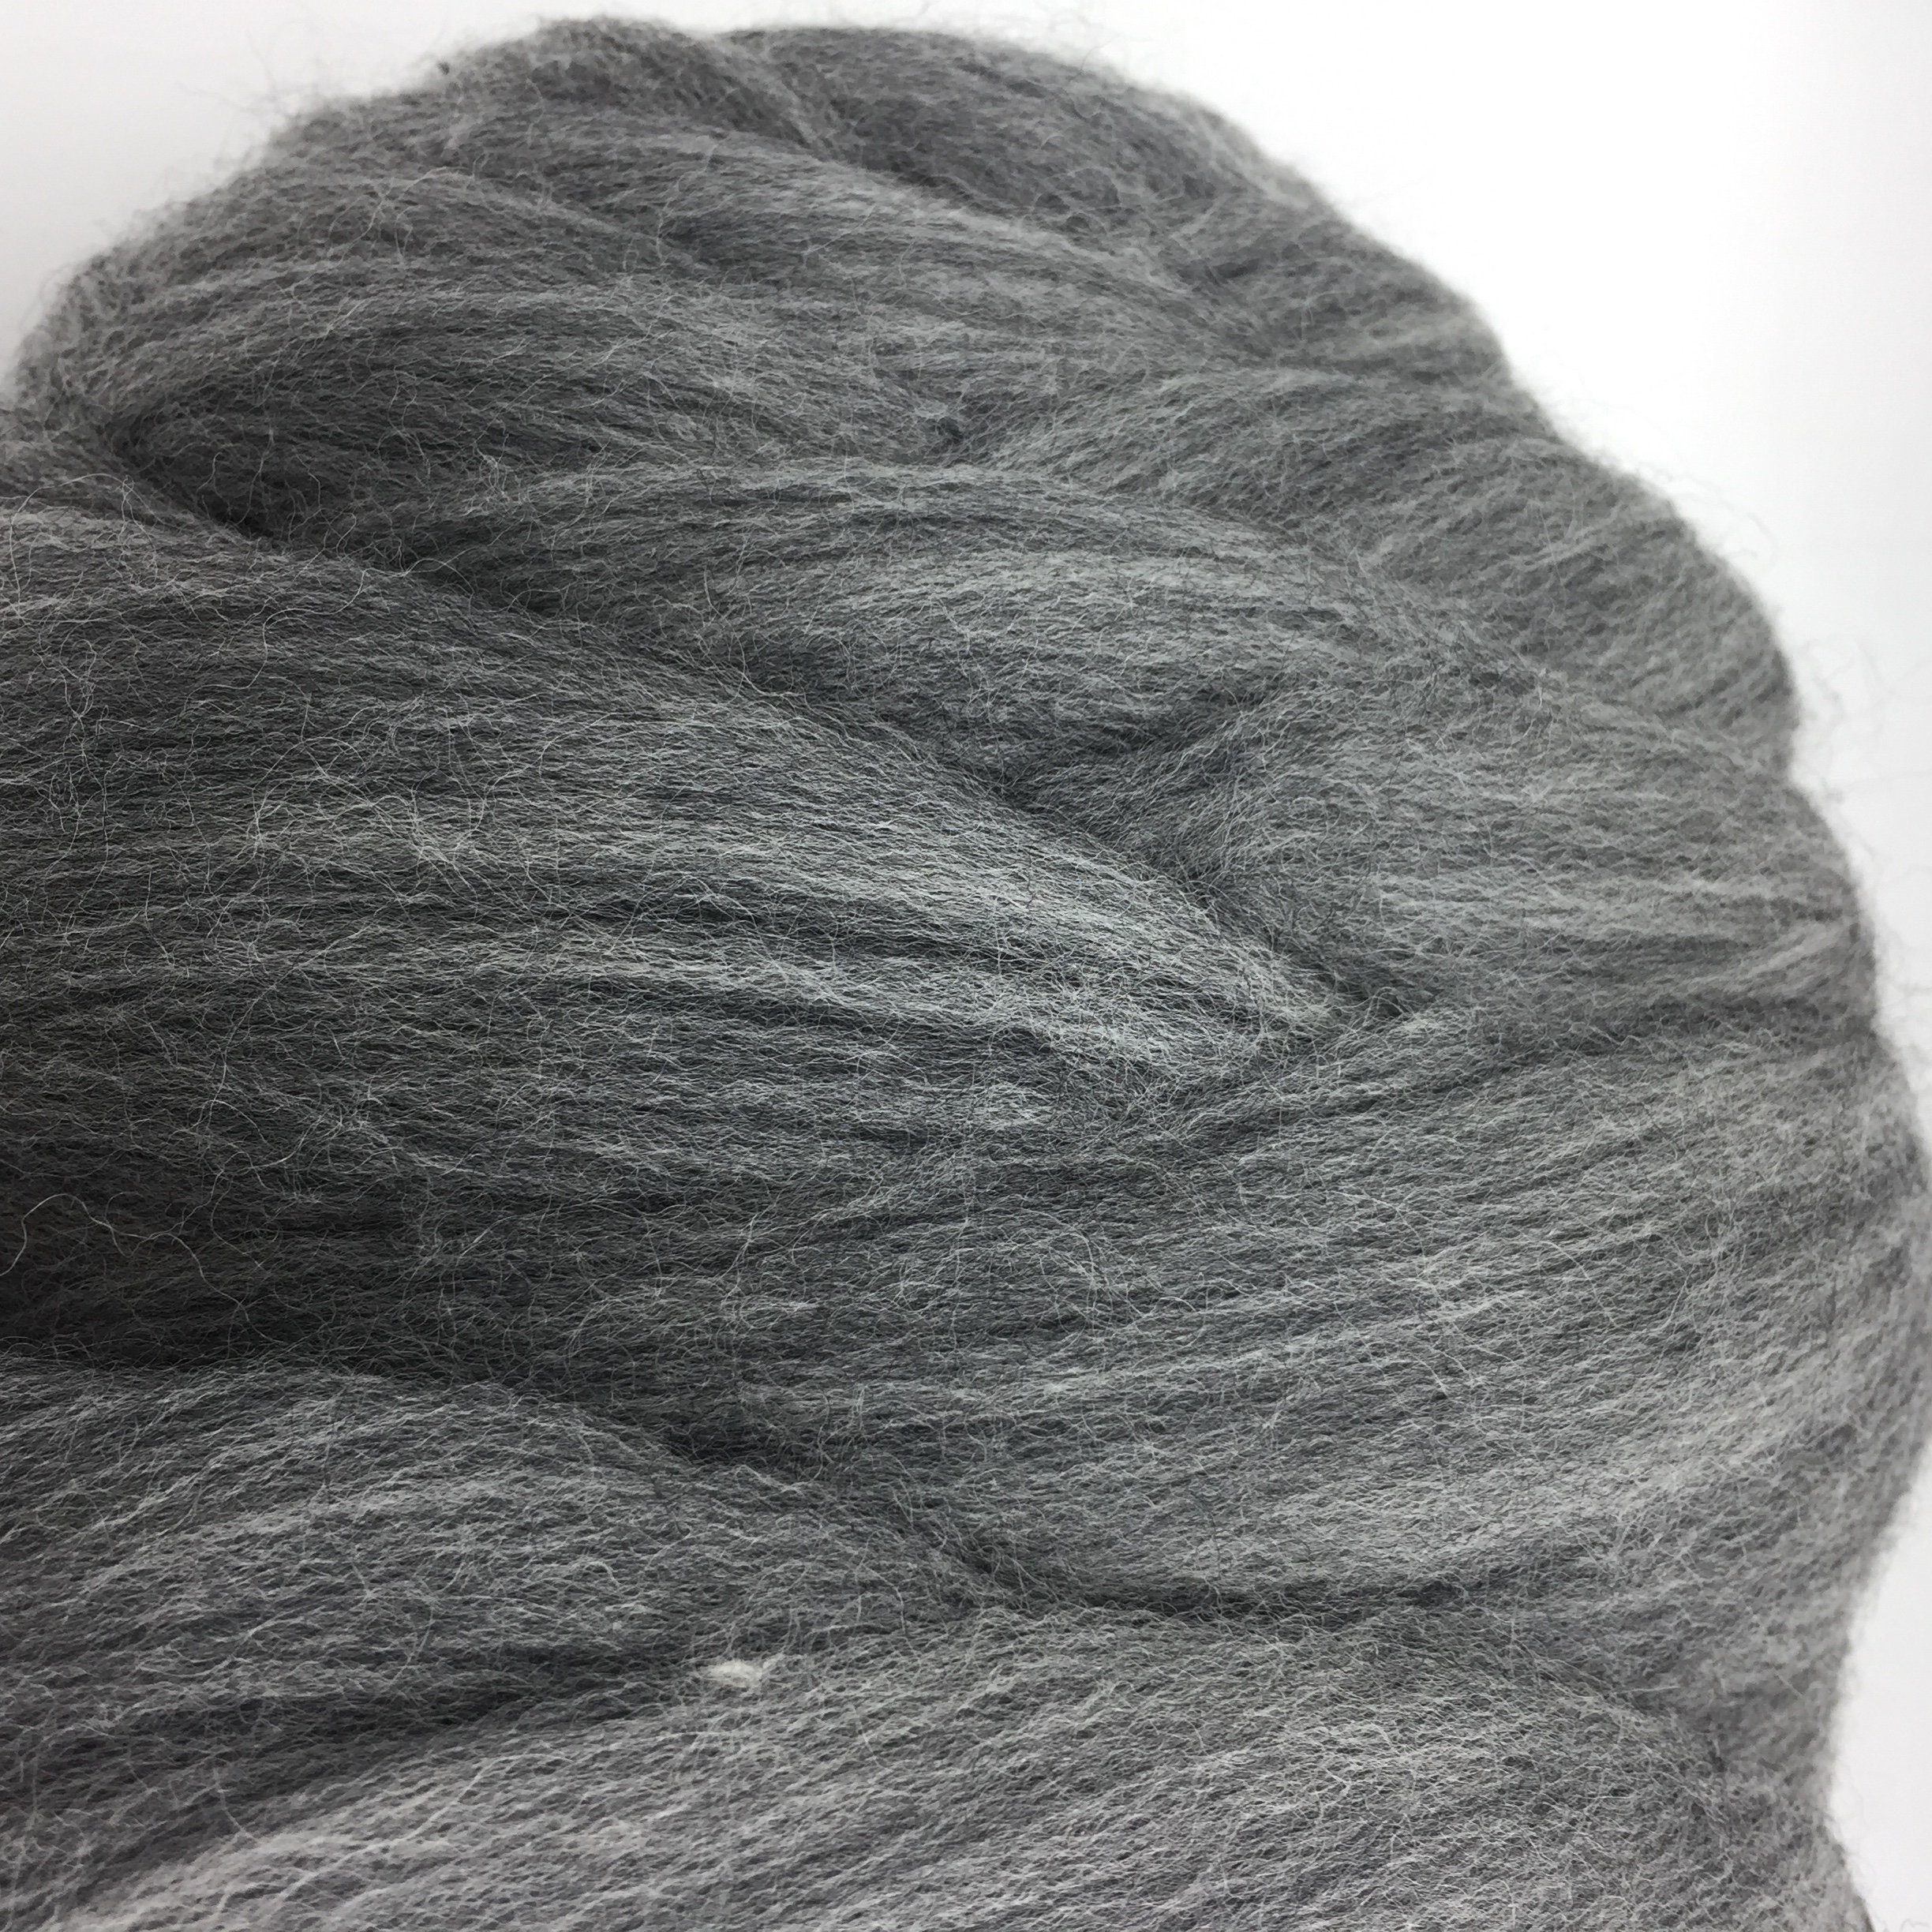 100% Wool Super Chunky Yarn - Non-Mulesed Merino Wool Roving Top,Extreme Big for Arm Knitting Knit Blankets Throws (4.4 LBS -88in, Gray) by FLORAVOGUE (Image #3)